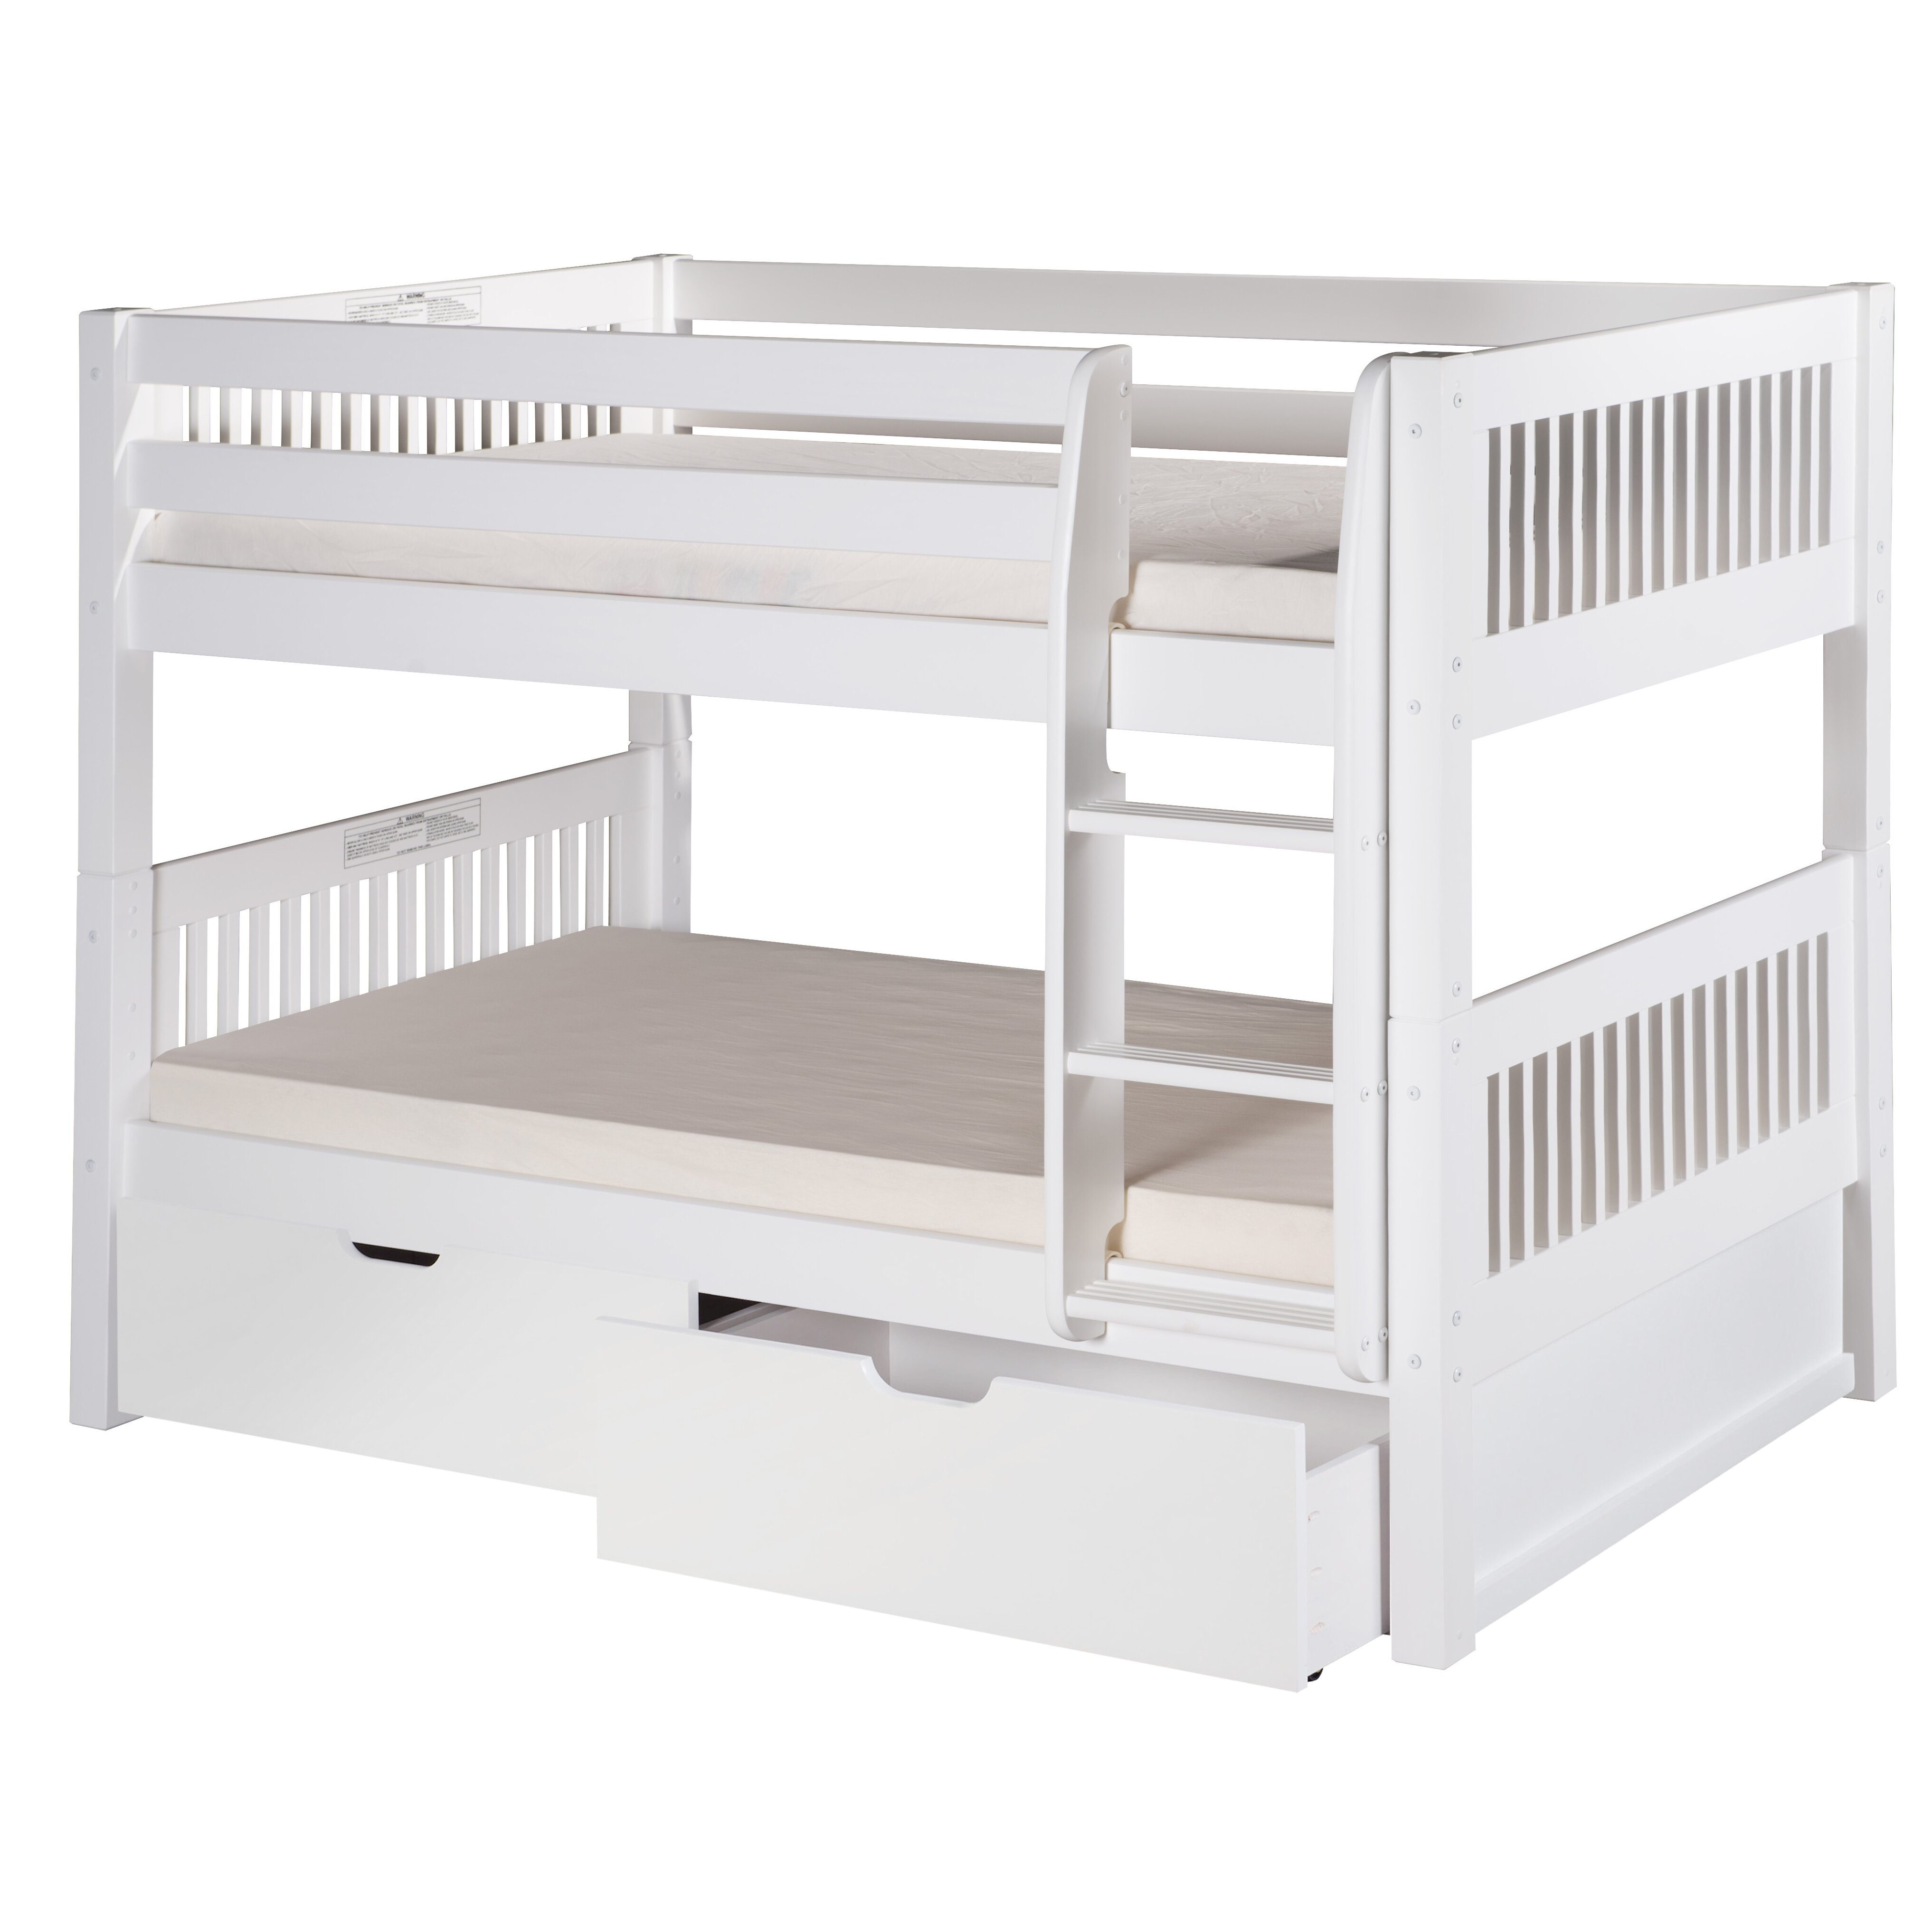 Camaflexi Bunk Bed Reviews